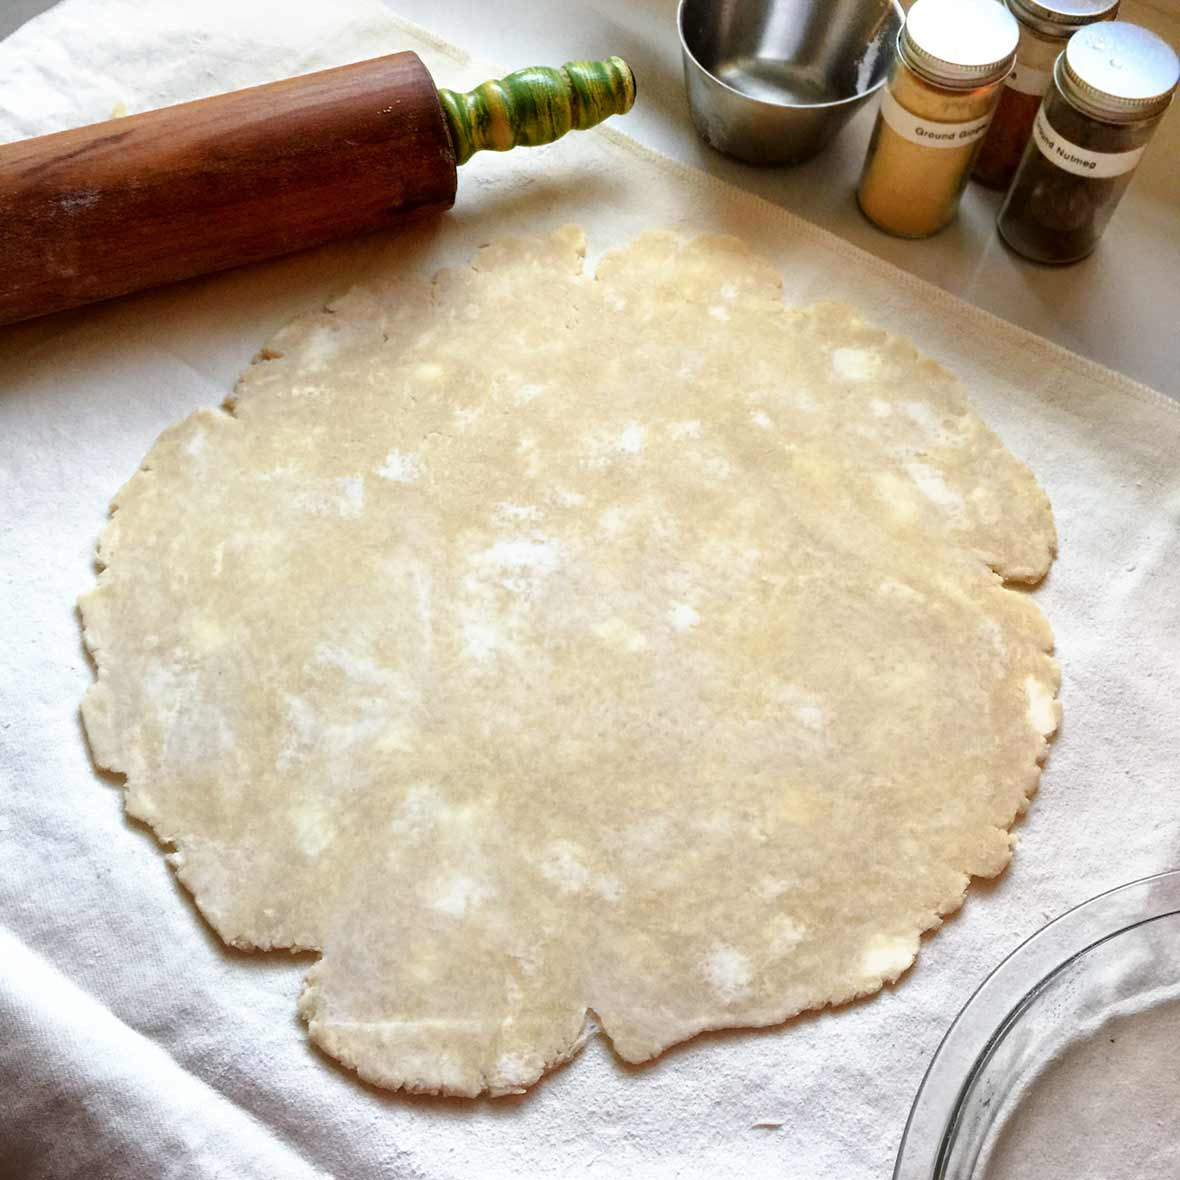 An uncooked pie crust rolled out on a floured surface with a rolling pin alongside